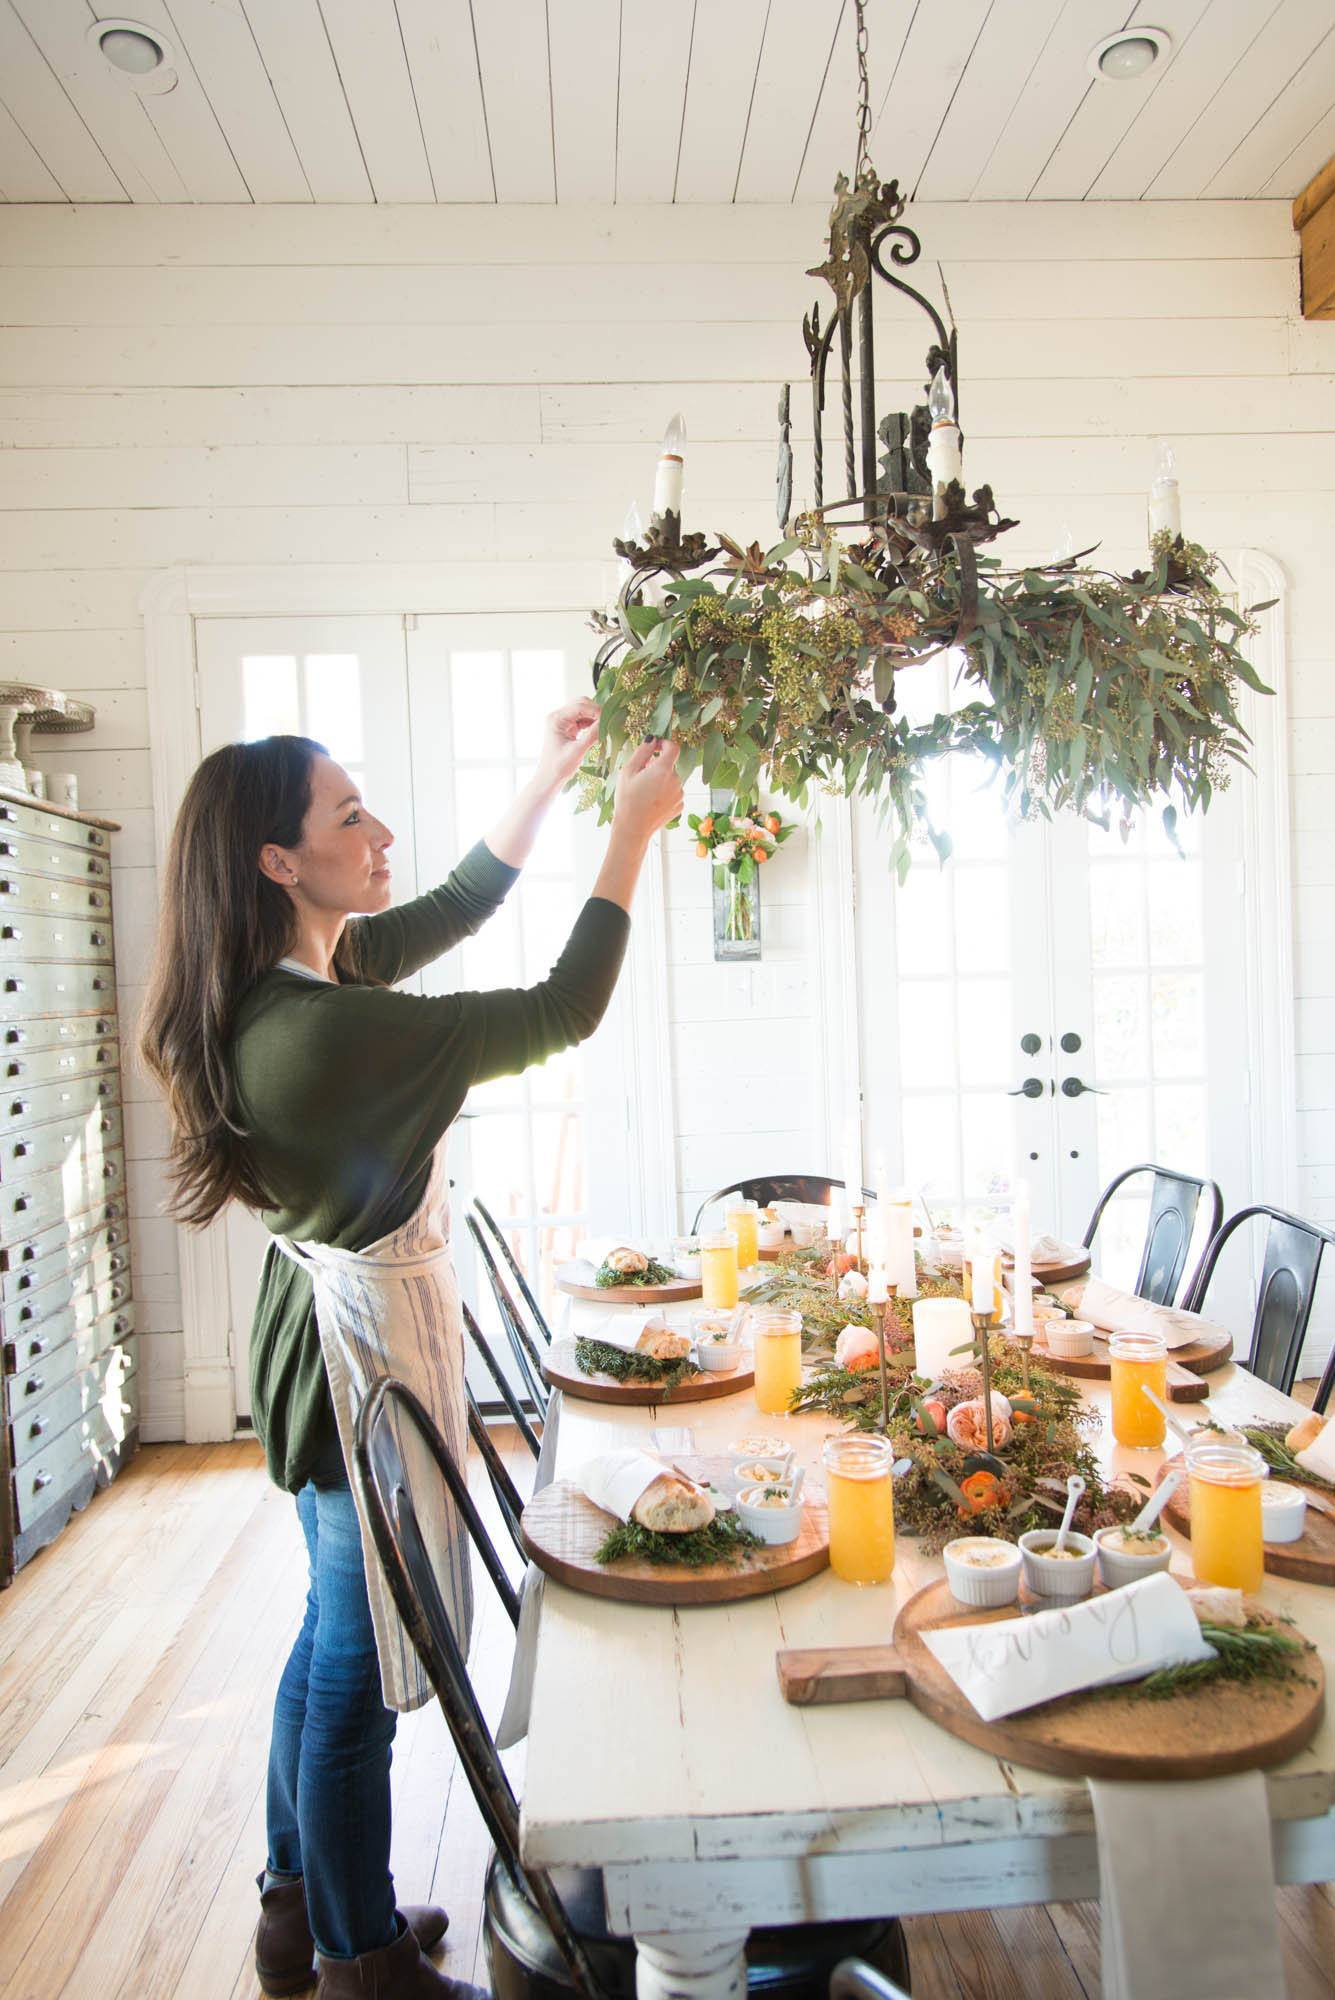 Joanna Gaines Reveals How She and Chip Really Handle Their Hectic